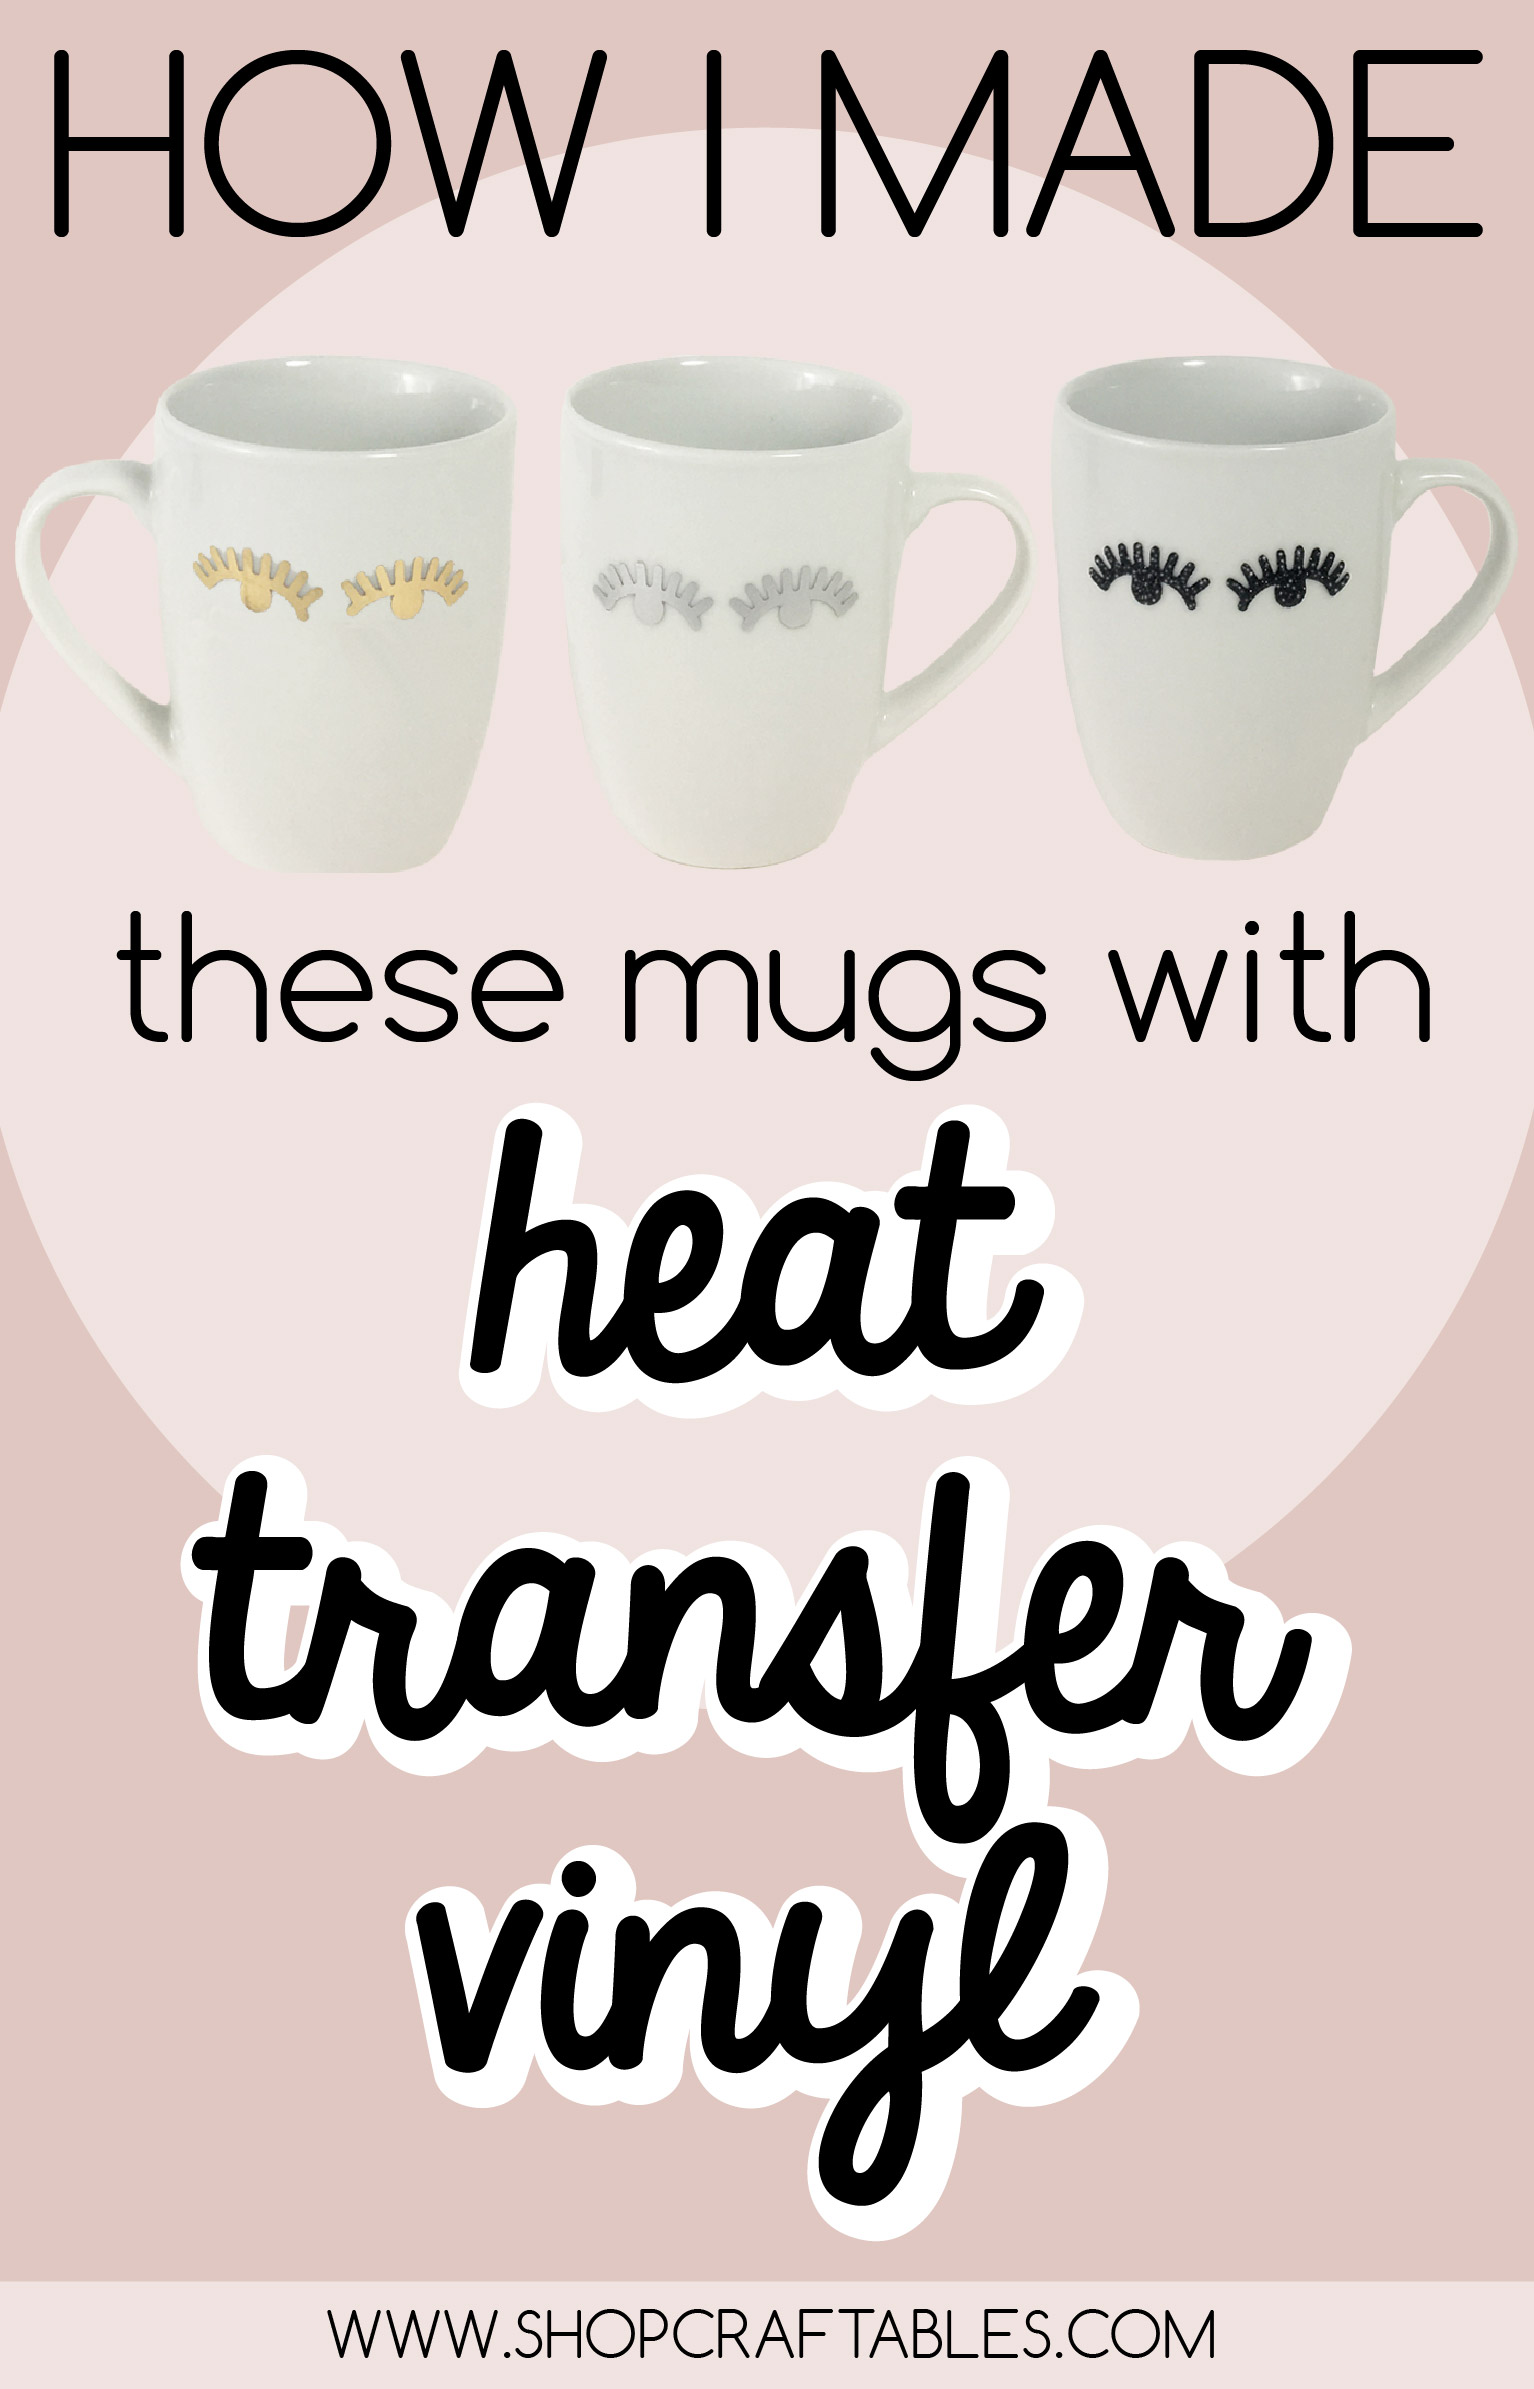 how to apply htv to mug with a heat gun